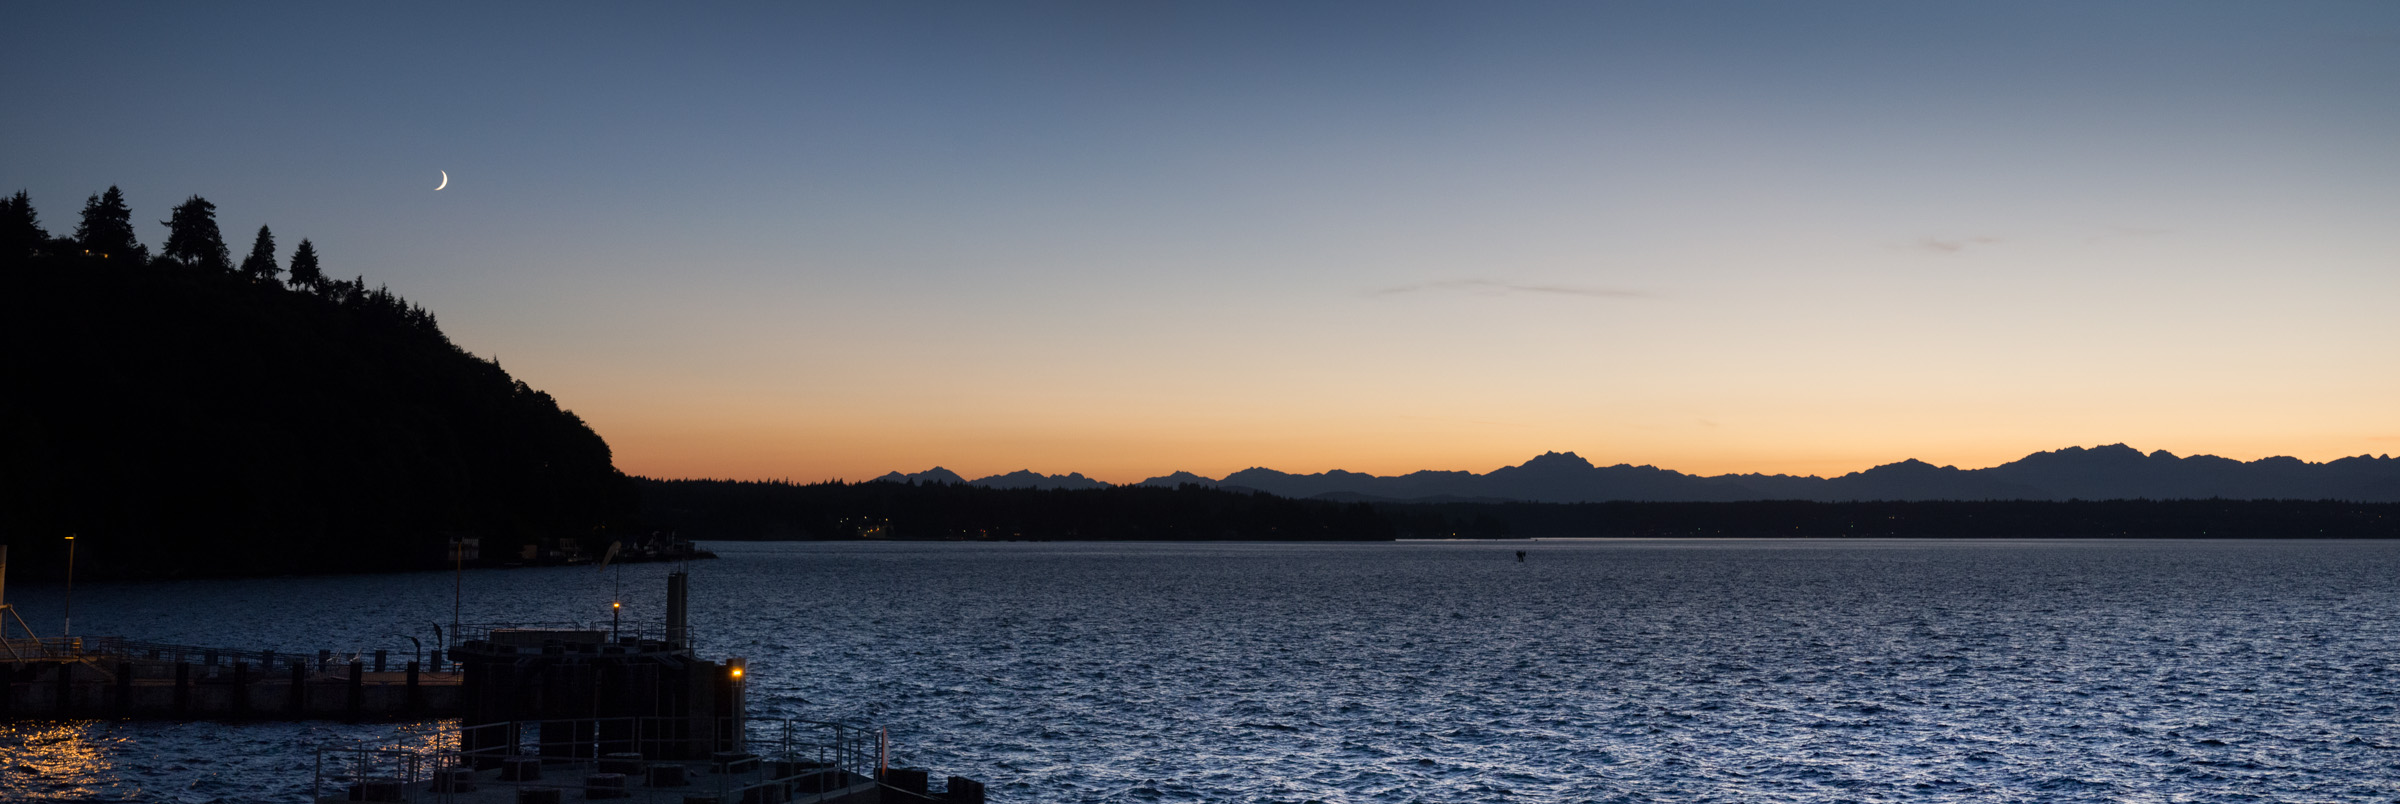 The Olympic Peninsula from the Vashon Ferry, 9:15pm, July 30.